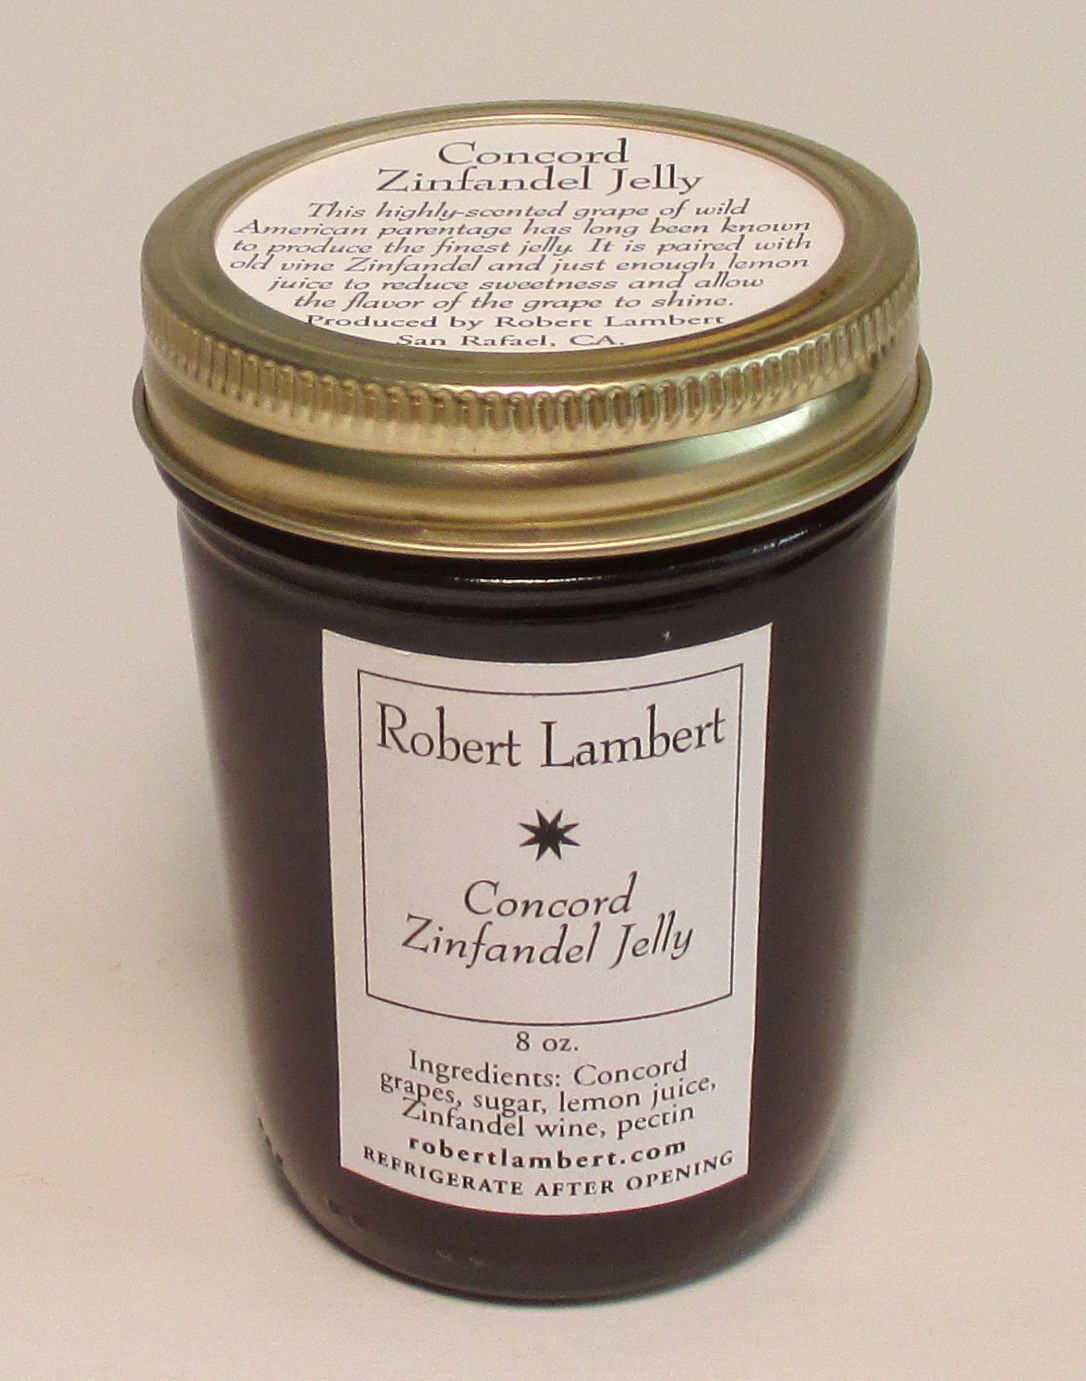 RL-Concord-Zinfandel-Jelly